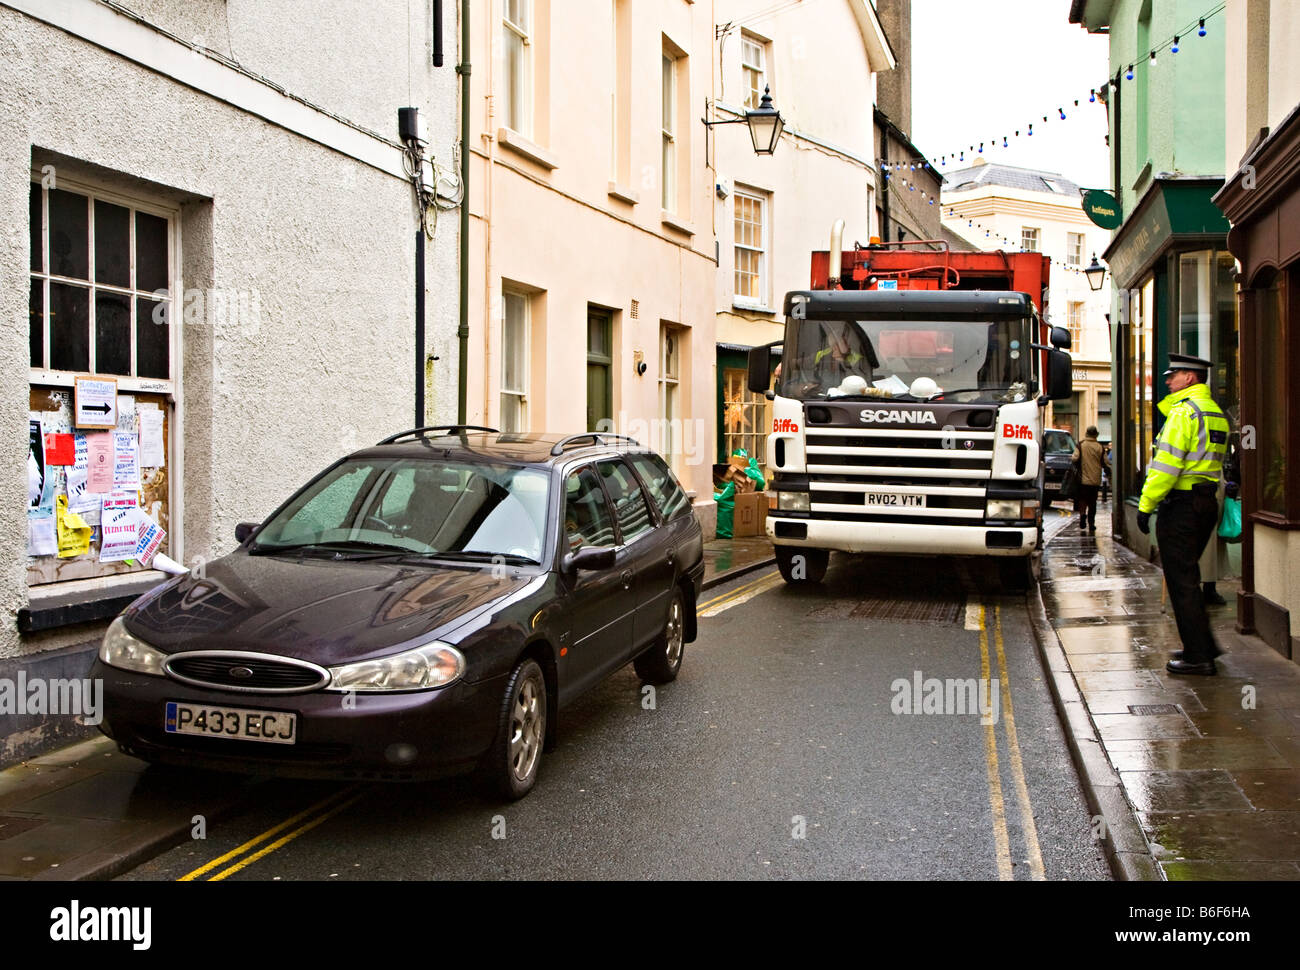 Car parked on double yellow lines in no waiting zone blocking road with police attending Brecon Wales UK - Stock Image